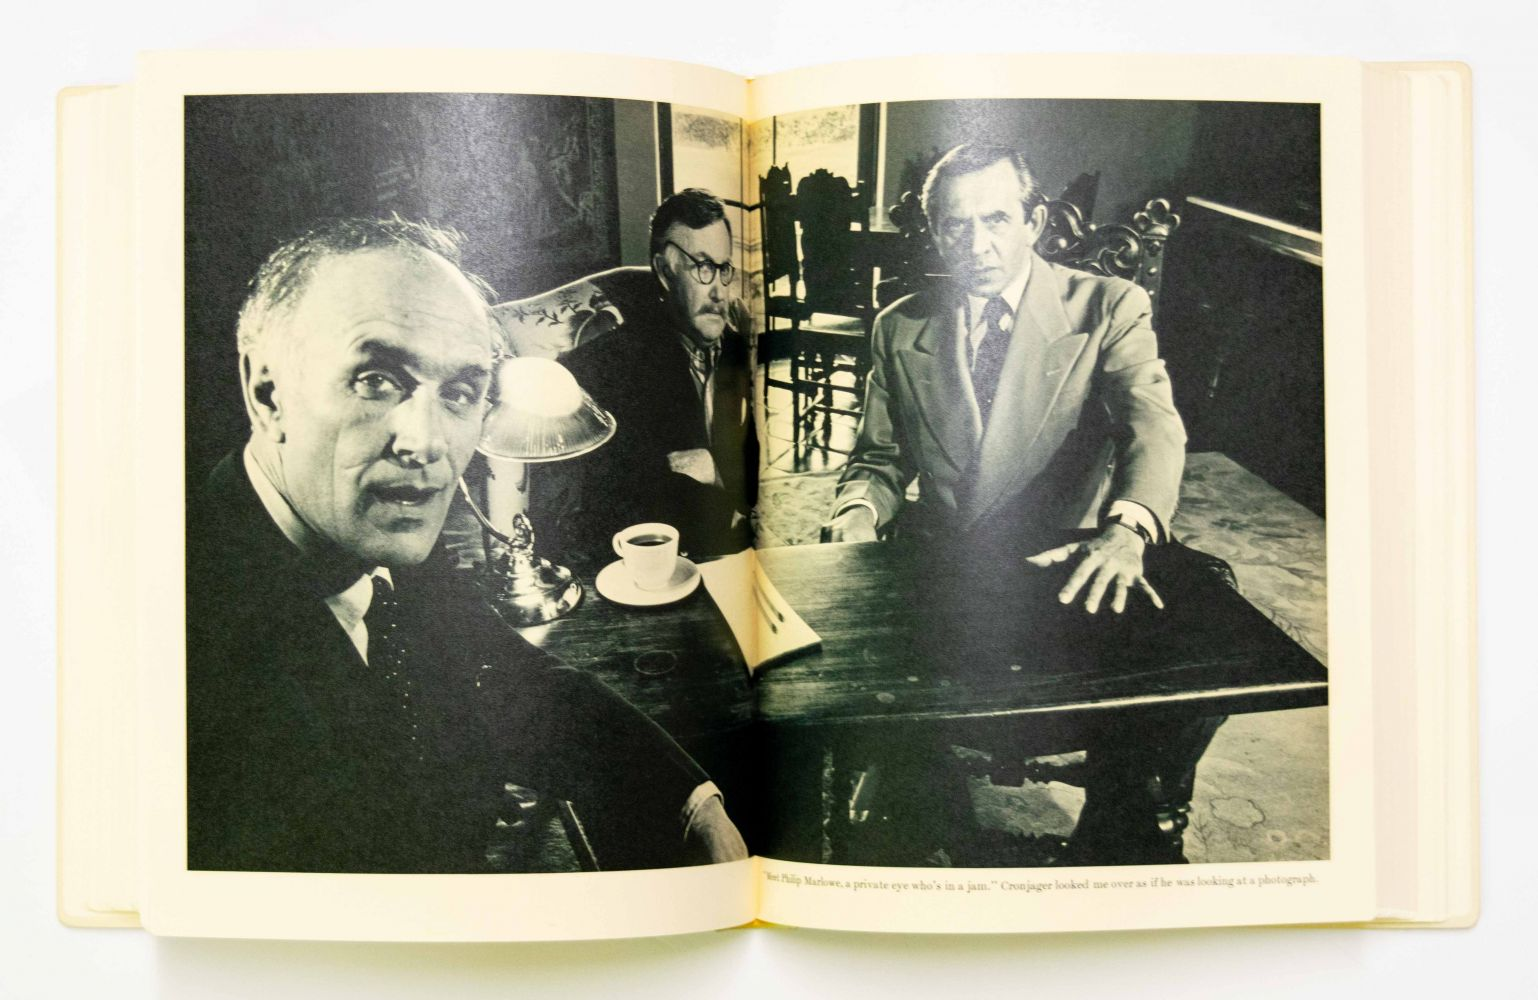 Raymond Chandler and Lou Stoumen The Big Sleep, 1986